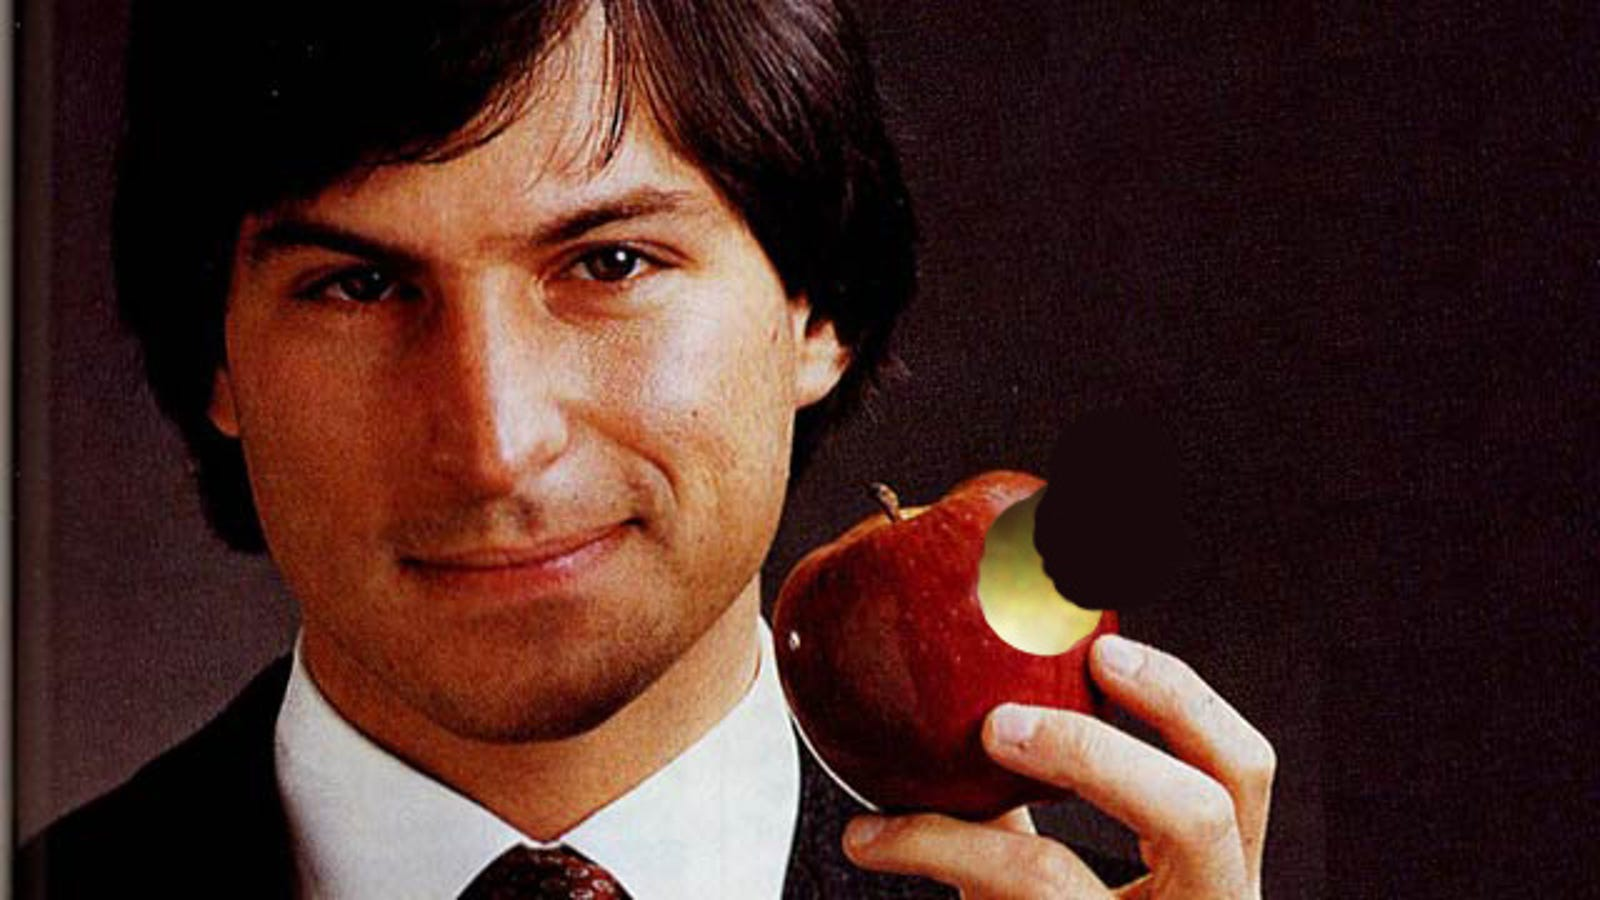 Report Steve Jobs Will Appear On A US Postage Stamp